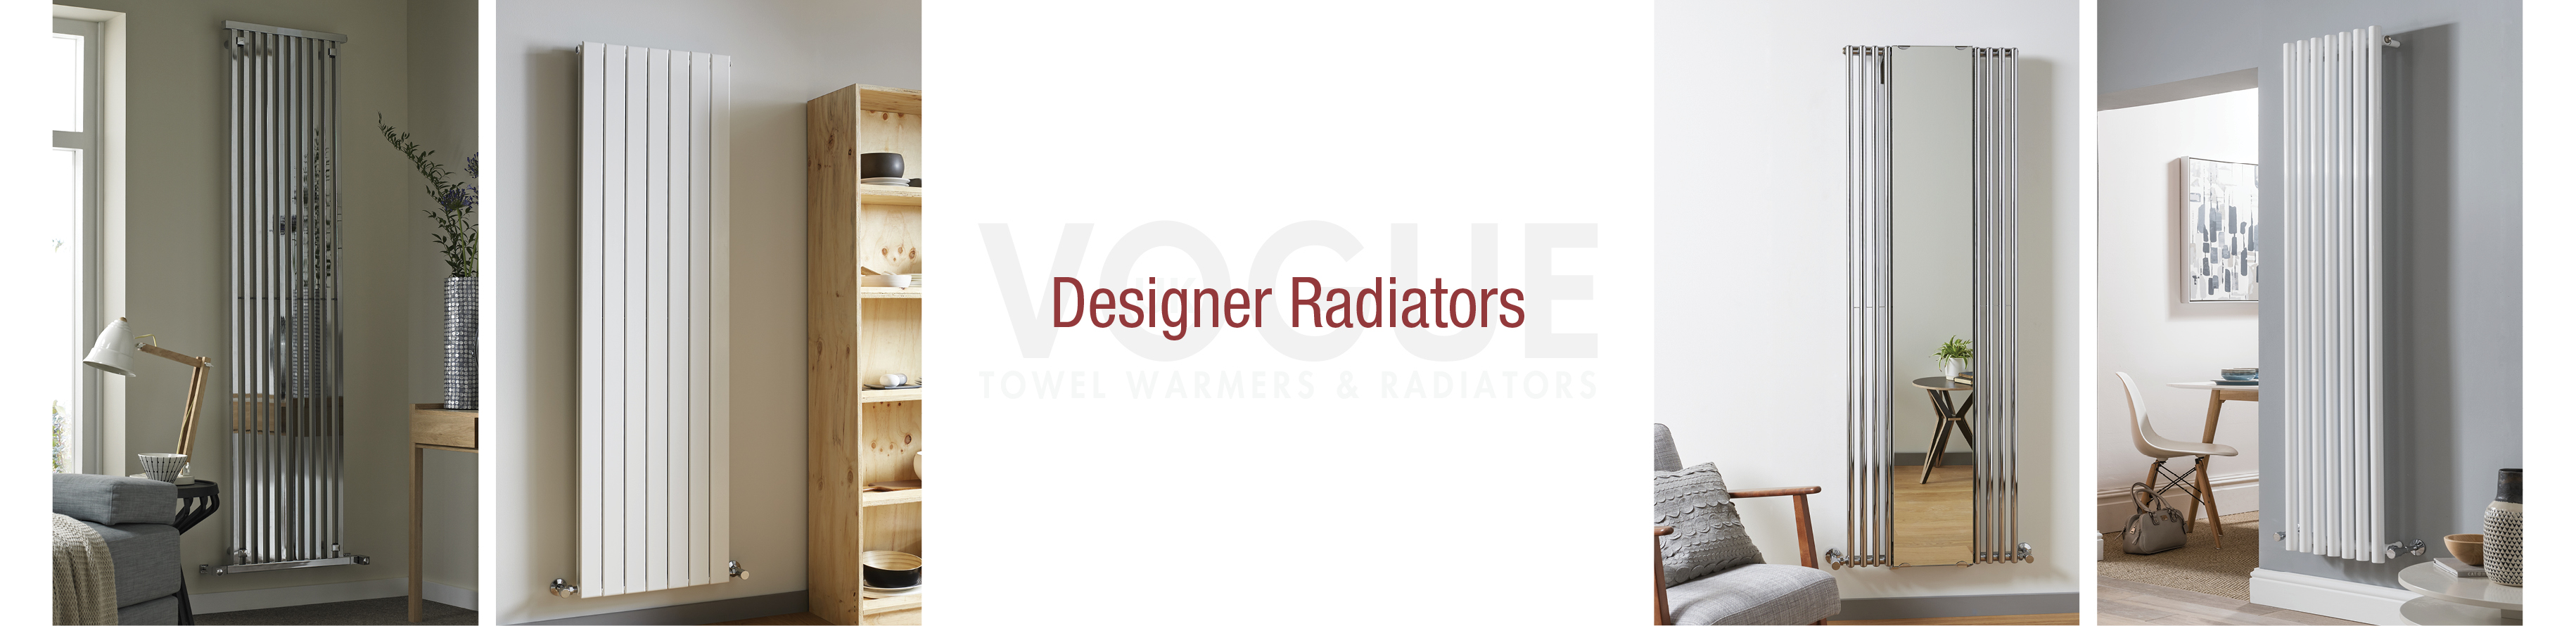 designer radiator product header